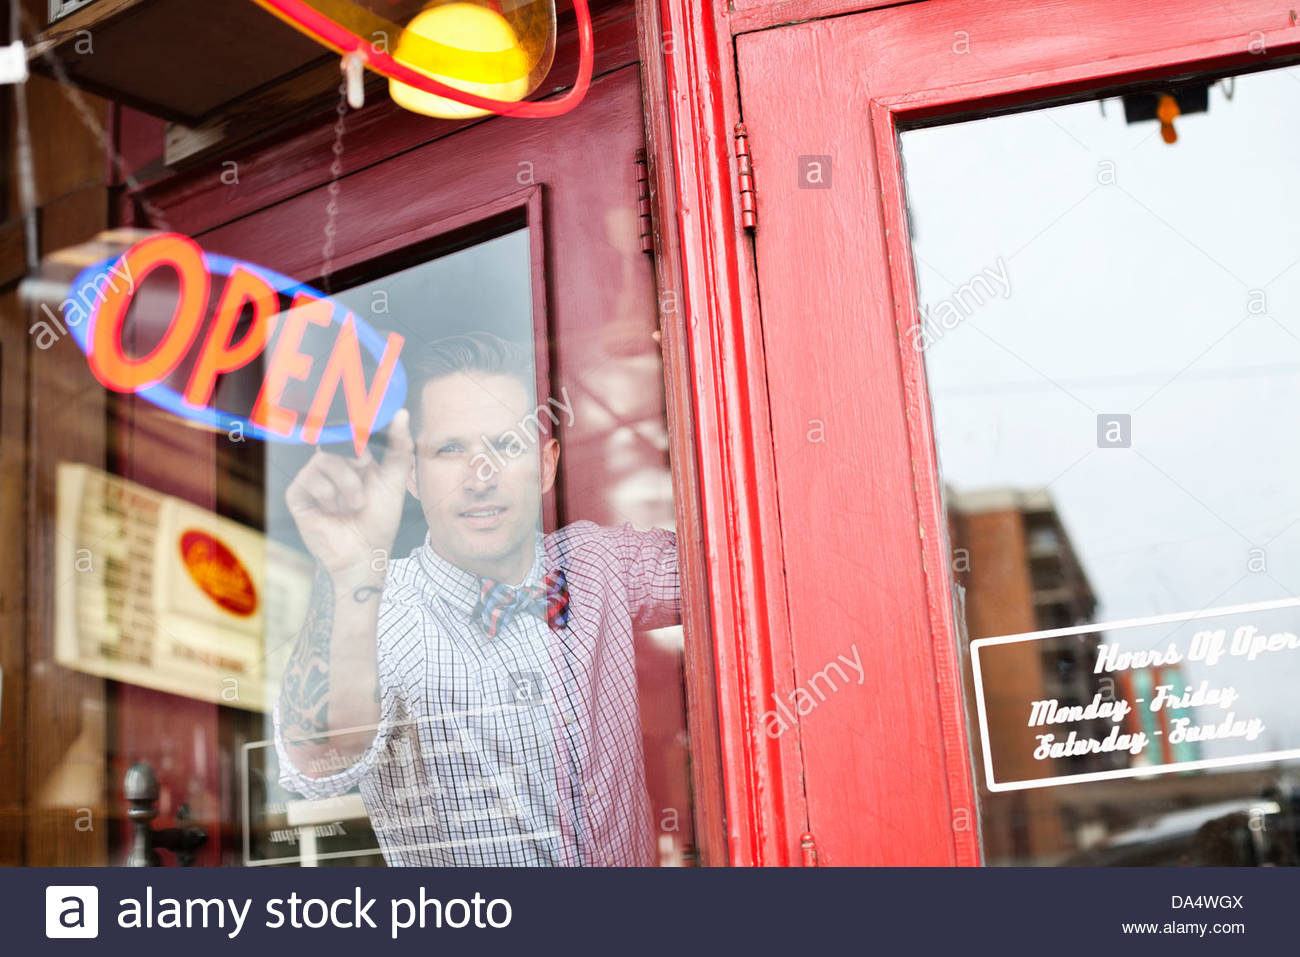 Male business owner adjusting open sign in diner window - Stock Image